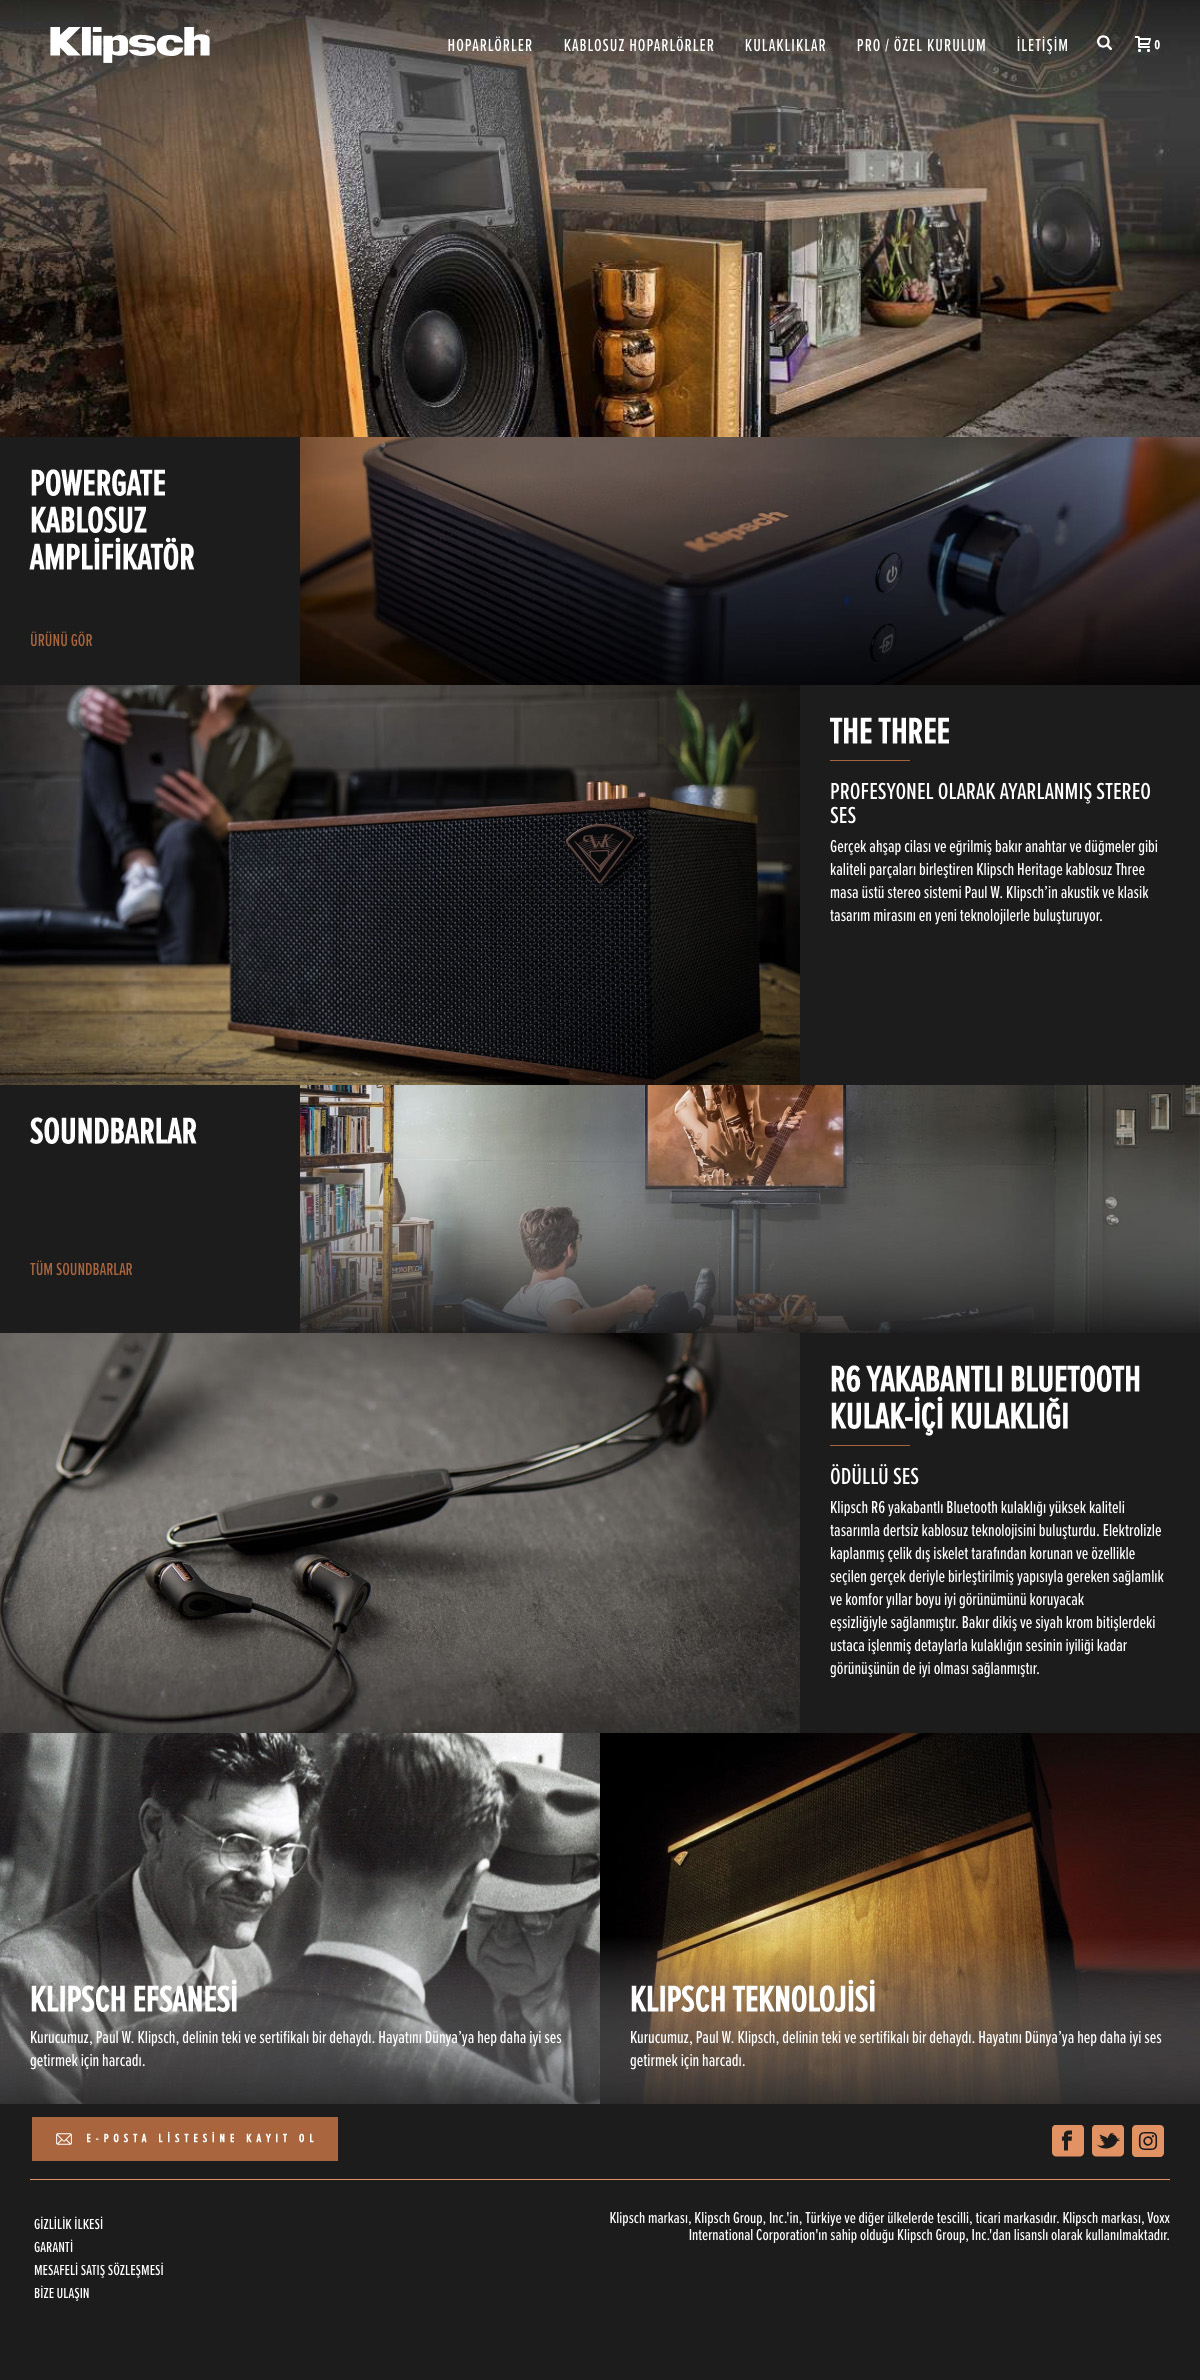 Klipsch - UI,UX Design & Wordpress Customization by Gokcin Onur